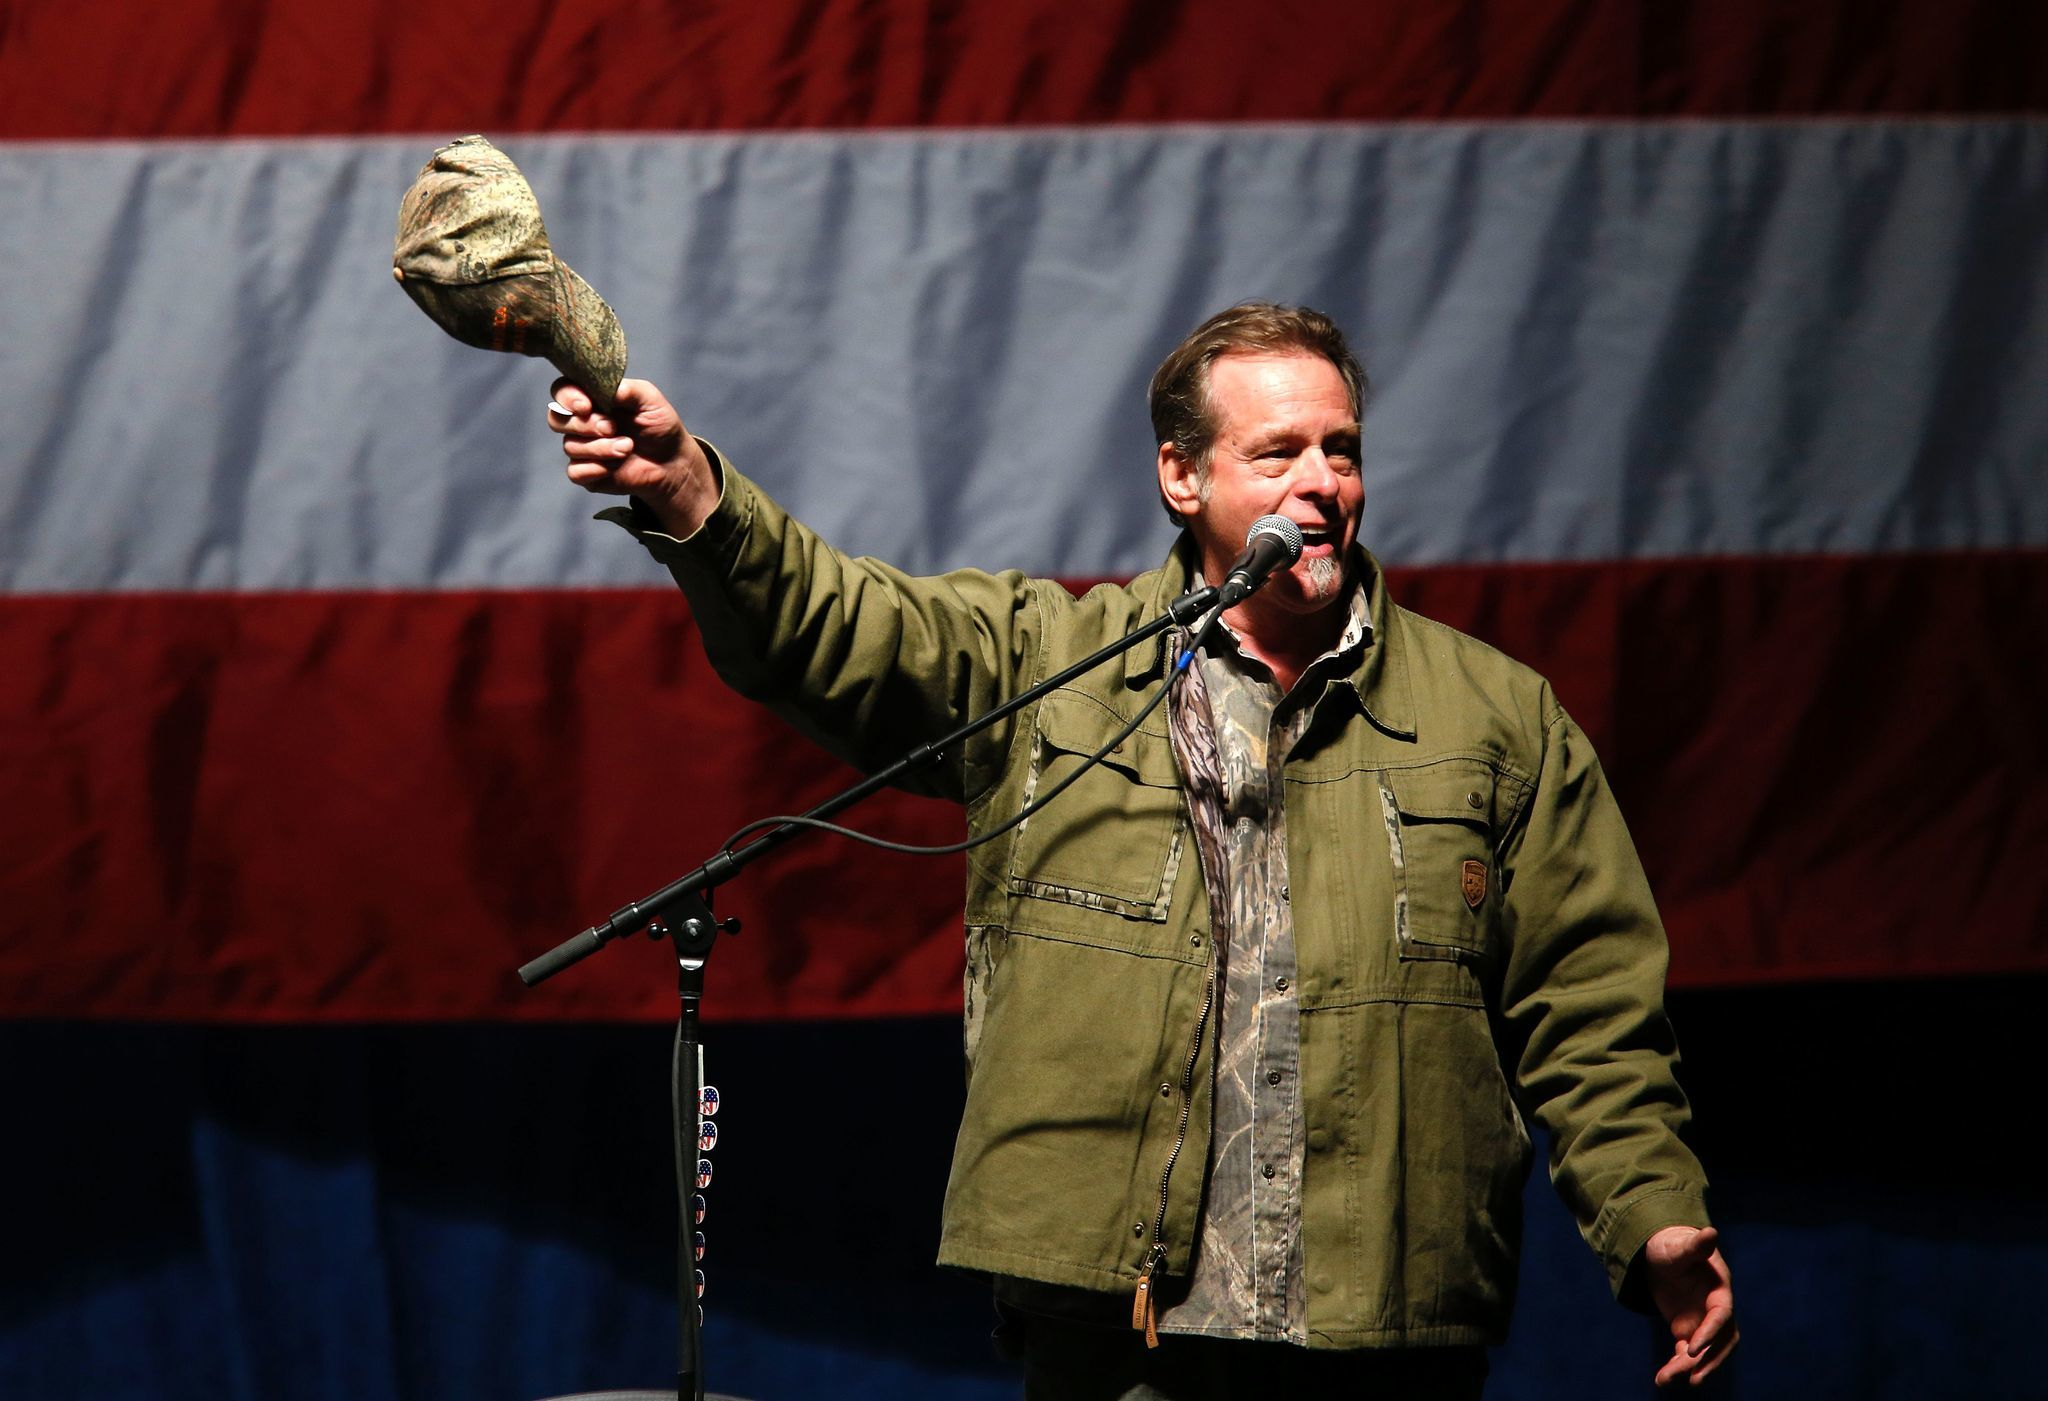 Ted Nugent sings the national anthem before Donald Trump addresses supporters at Freedom Hill Amphitheater on Nov. 6.